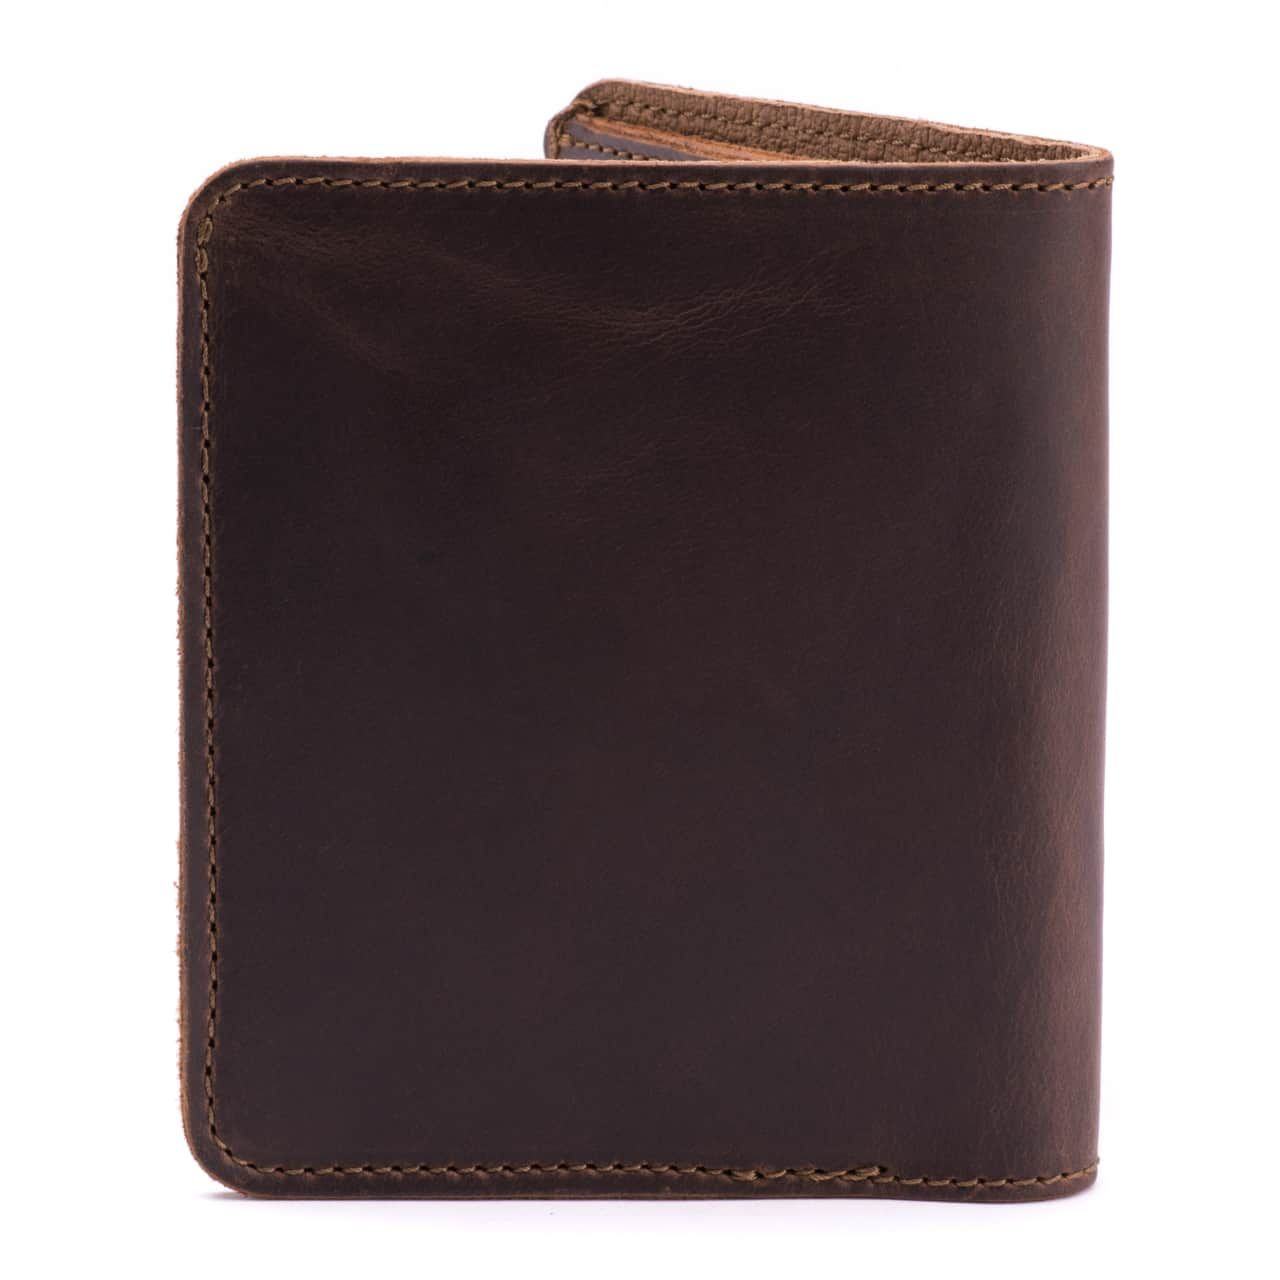 large leather bifold wallet large in dark coffee brown leather